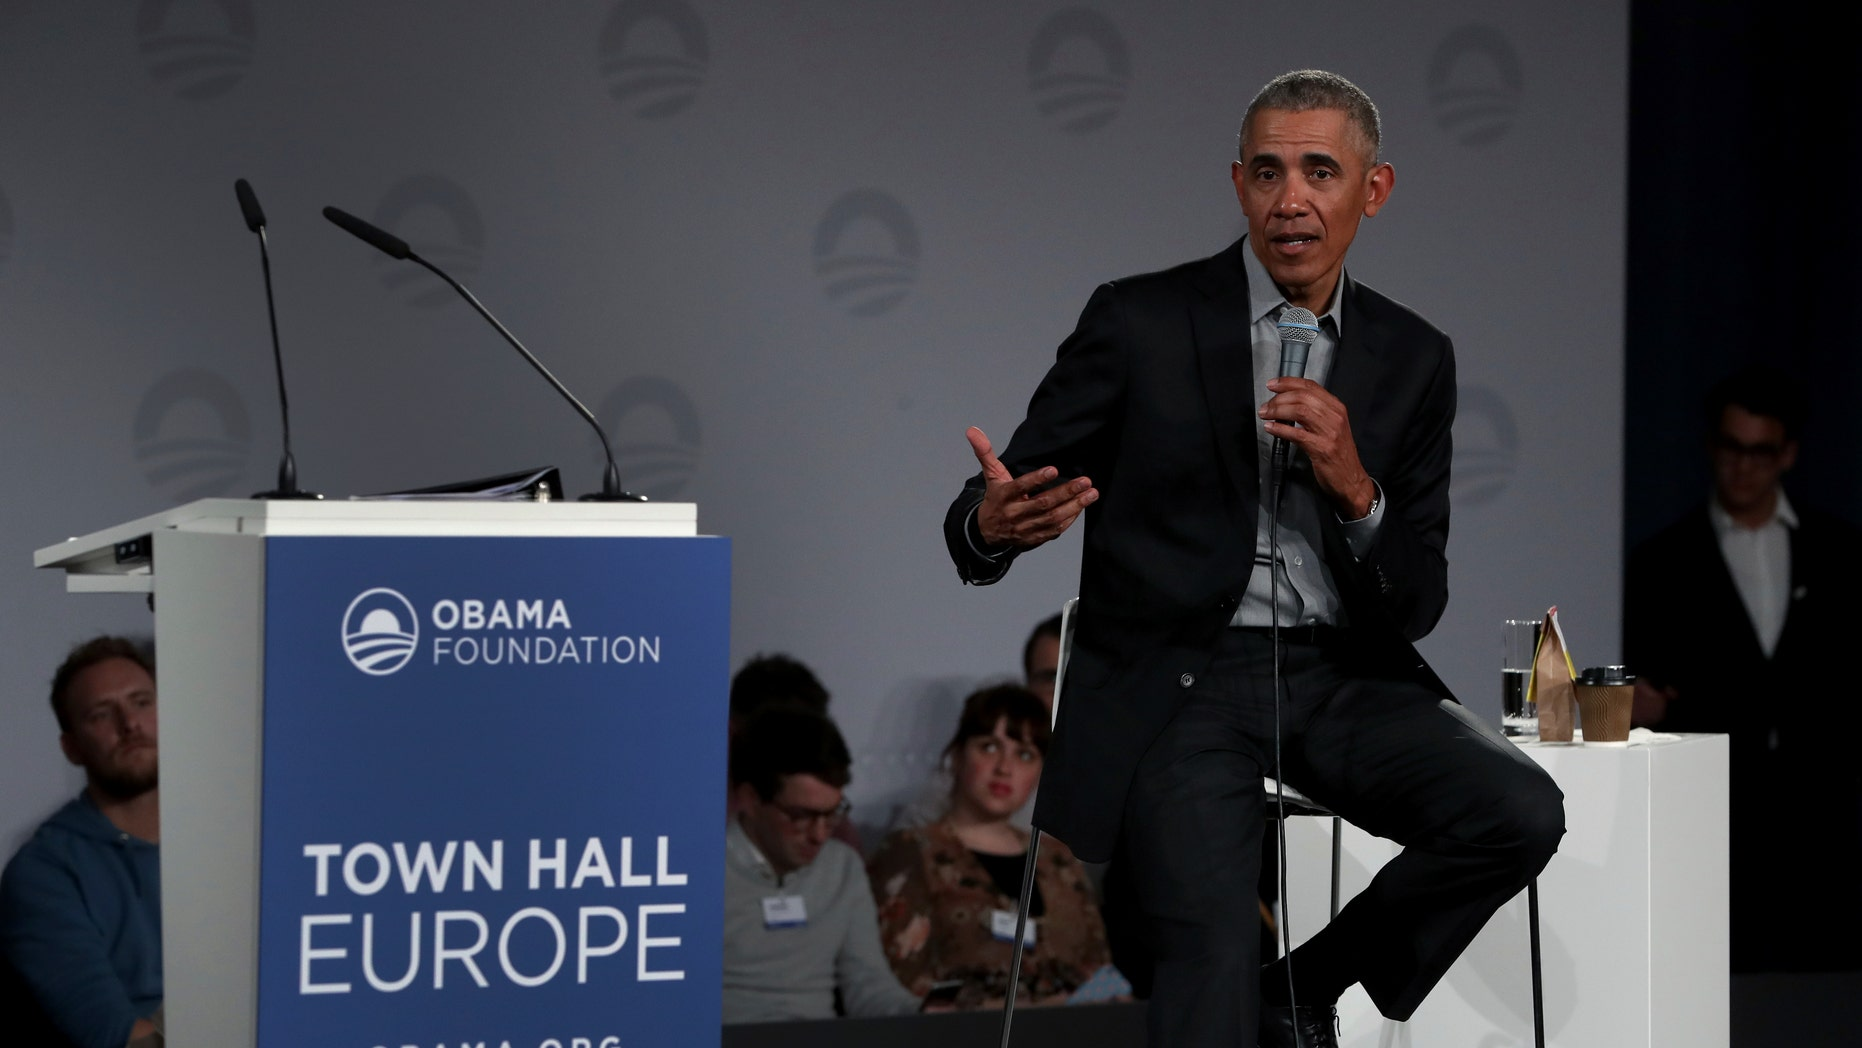 Former President Barack Obama gestures as he speaks during a town hall meeting at the European School For Management And Technology (ESMT) in Berlin, Germany, Saturday, April 6, 2019. (AP Photo/Michael Sohn)